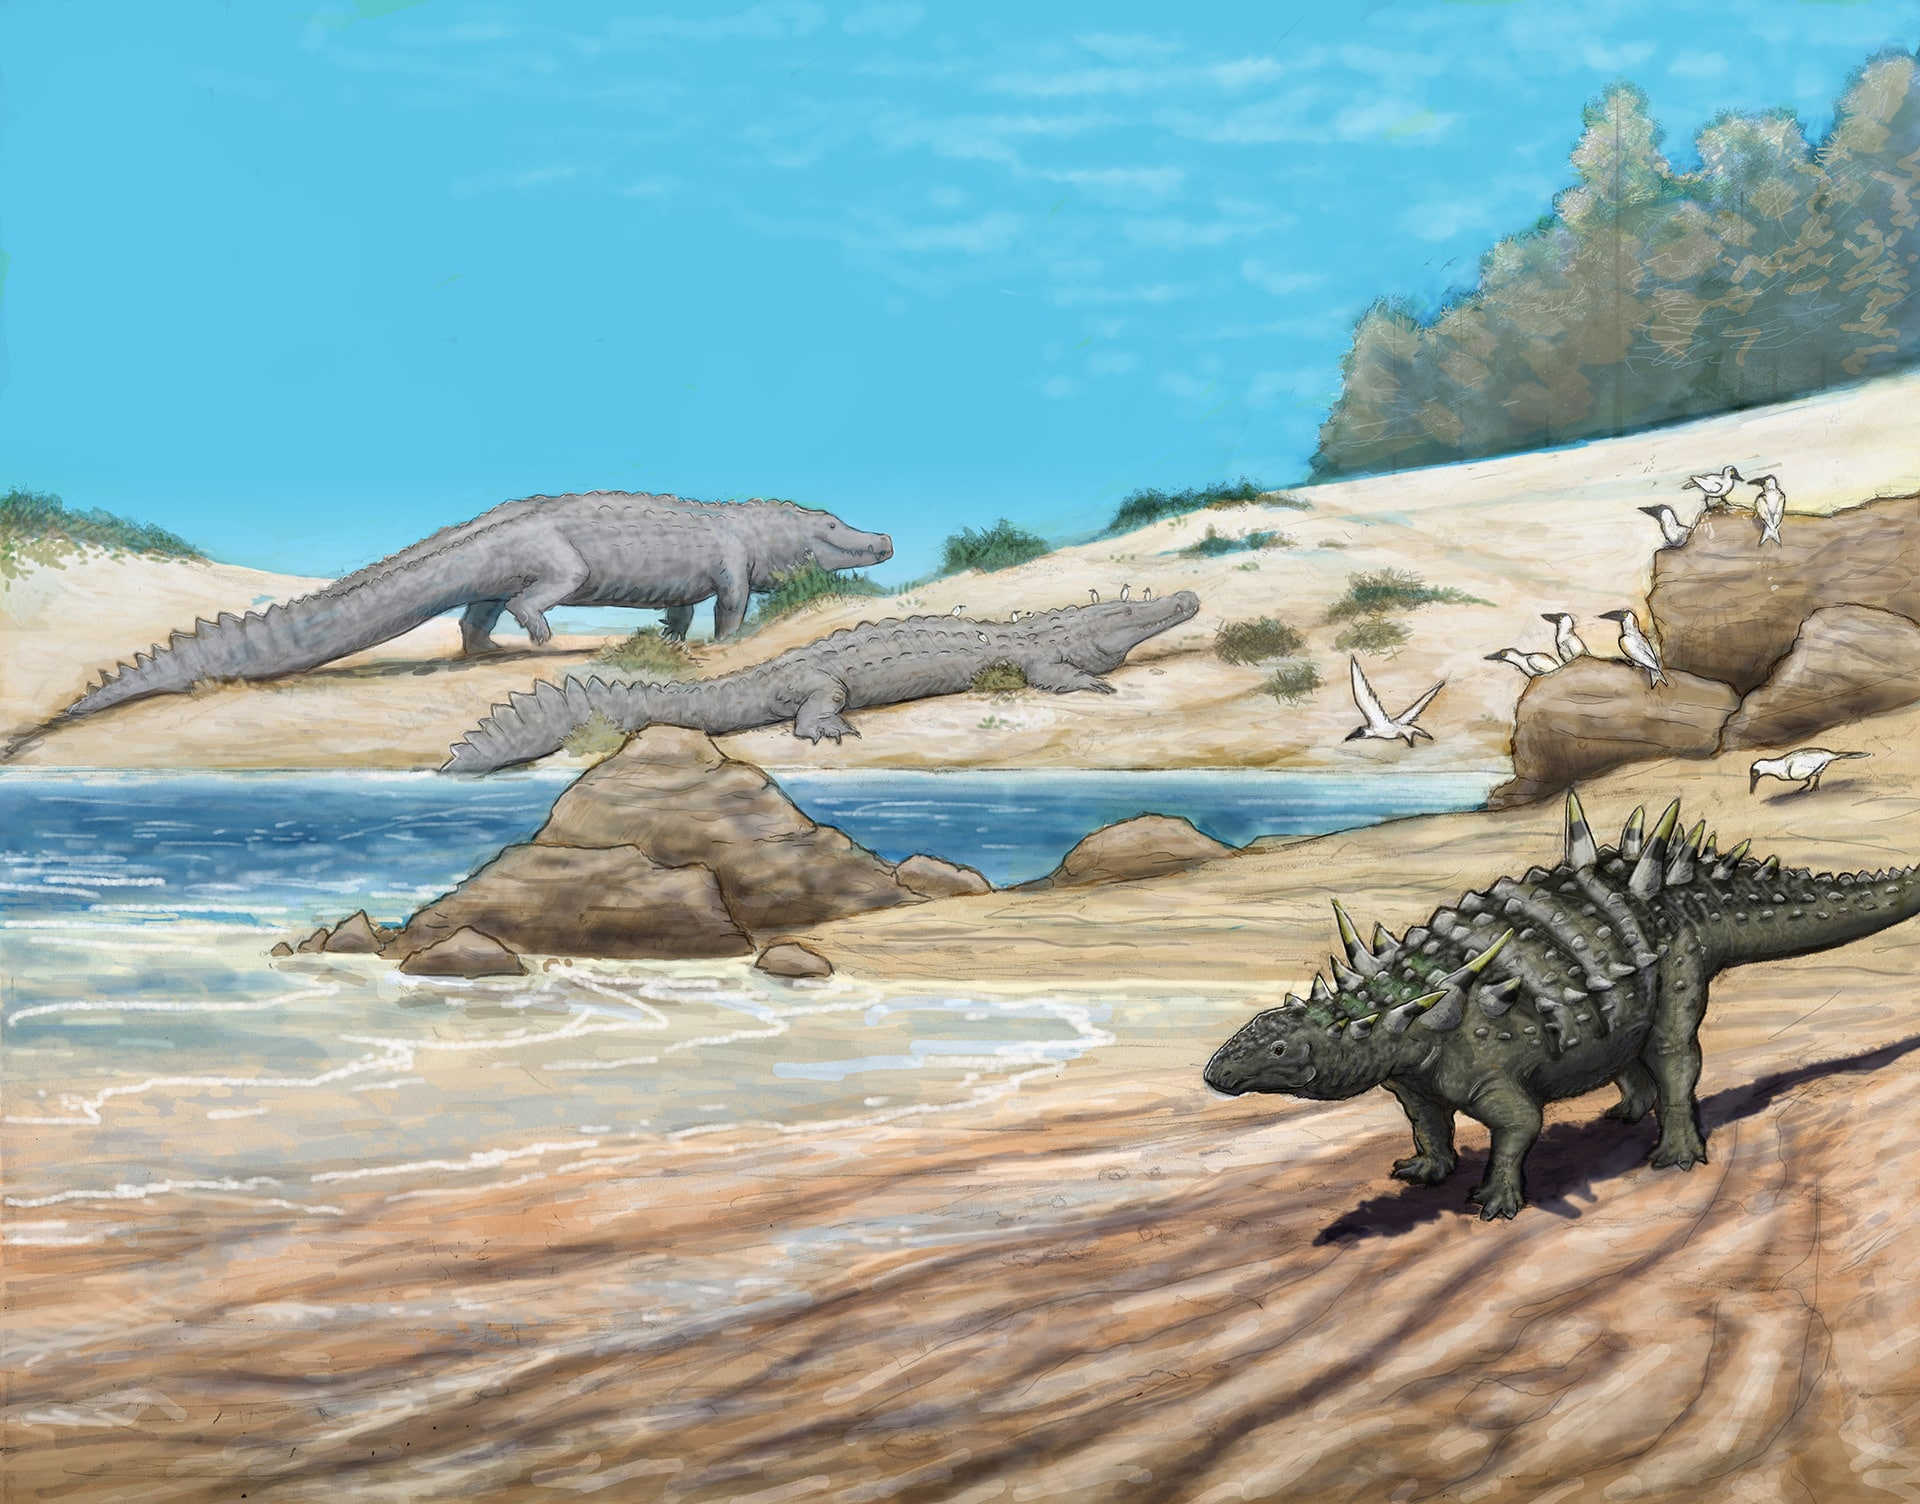 In the early afternoon, a Nodosaur comes down to the shore to scavenge for seafood. Across the inlet lie a pair of massive Deinosuchus. Bold Icthyornis--toothed birds--squabble on the rocks.